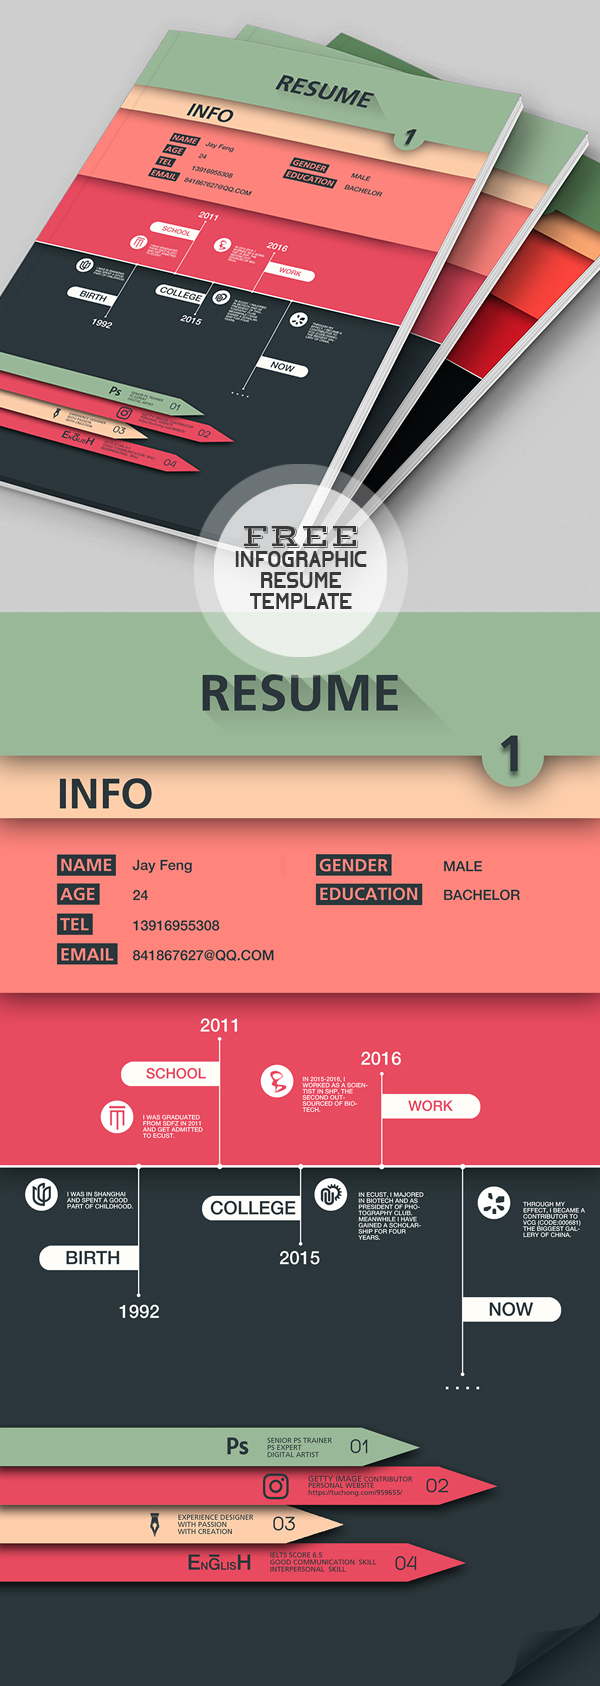 Infographic Style Free Resume Template